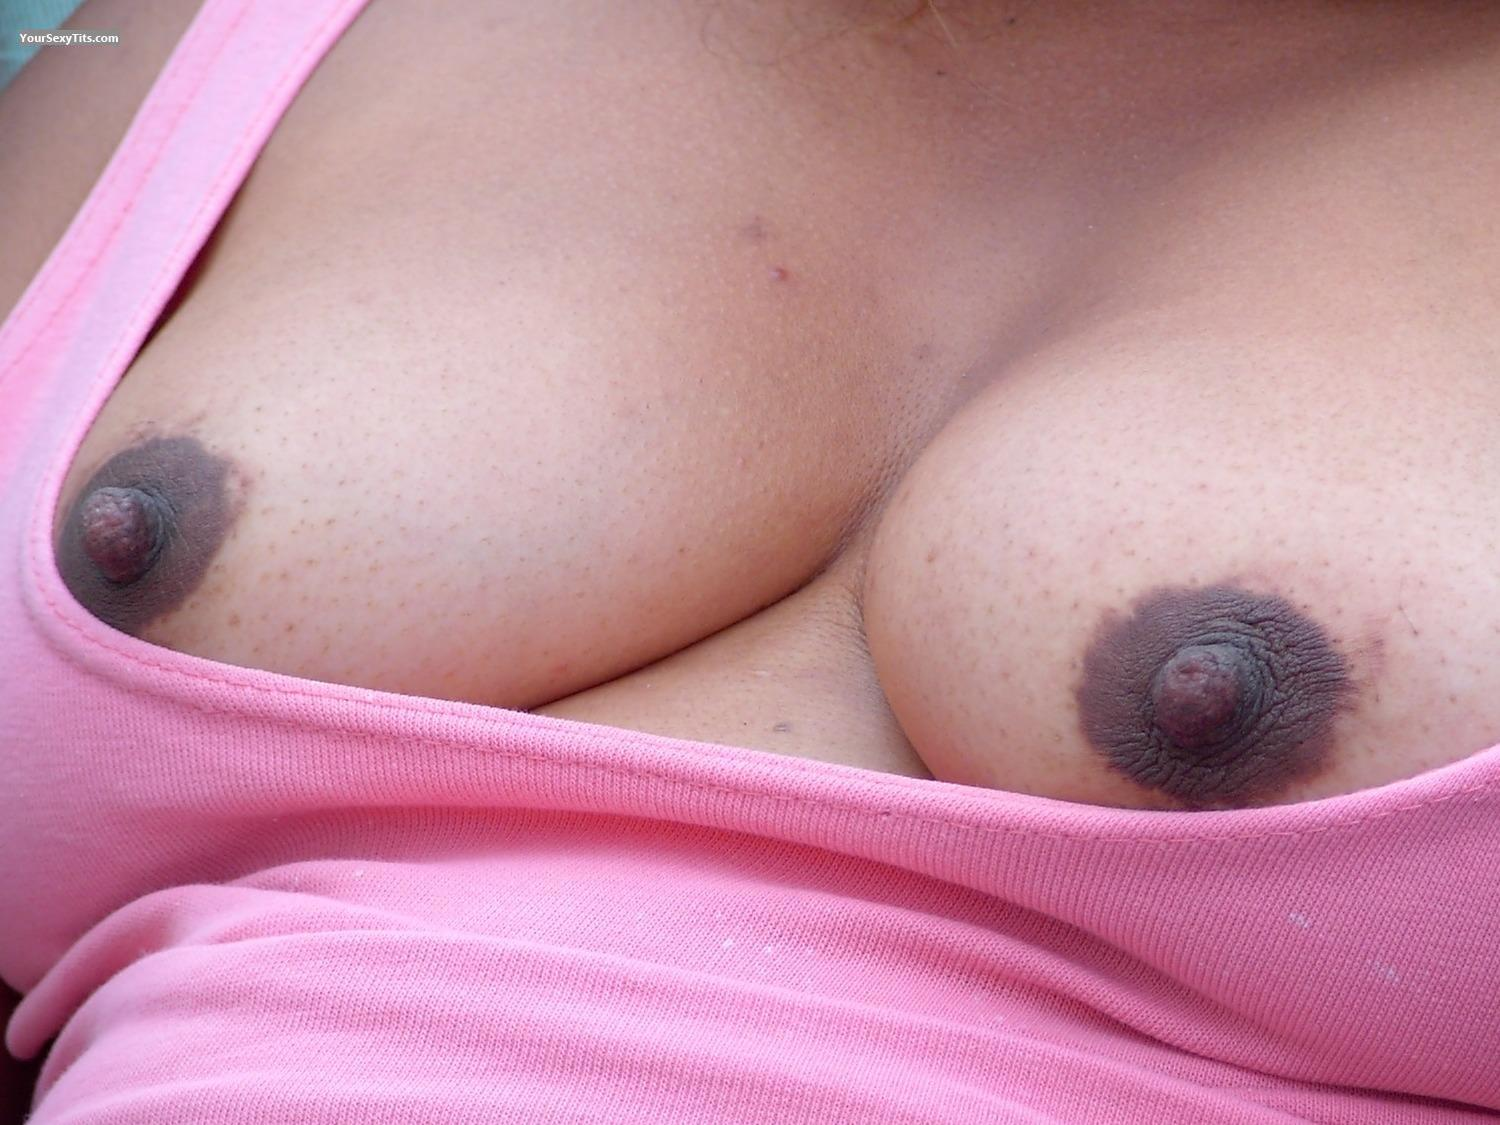 Tit Flash: Medium Tits - Kaylee from Canada